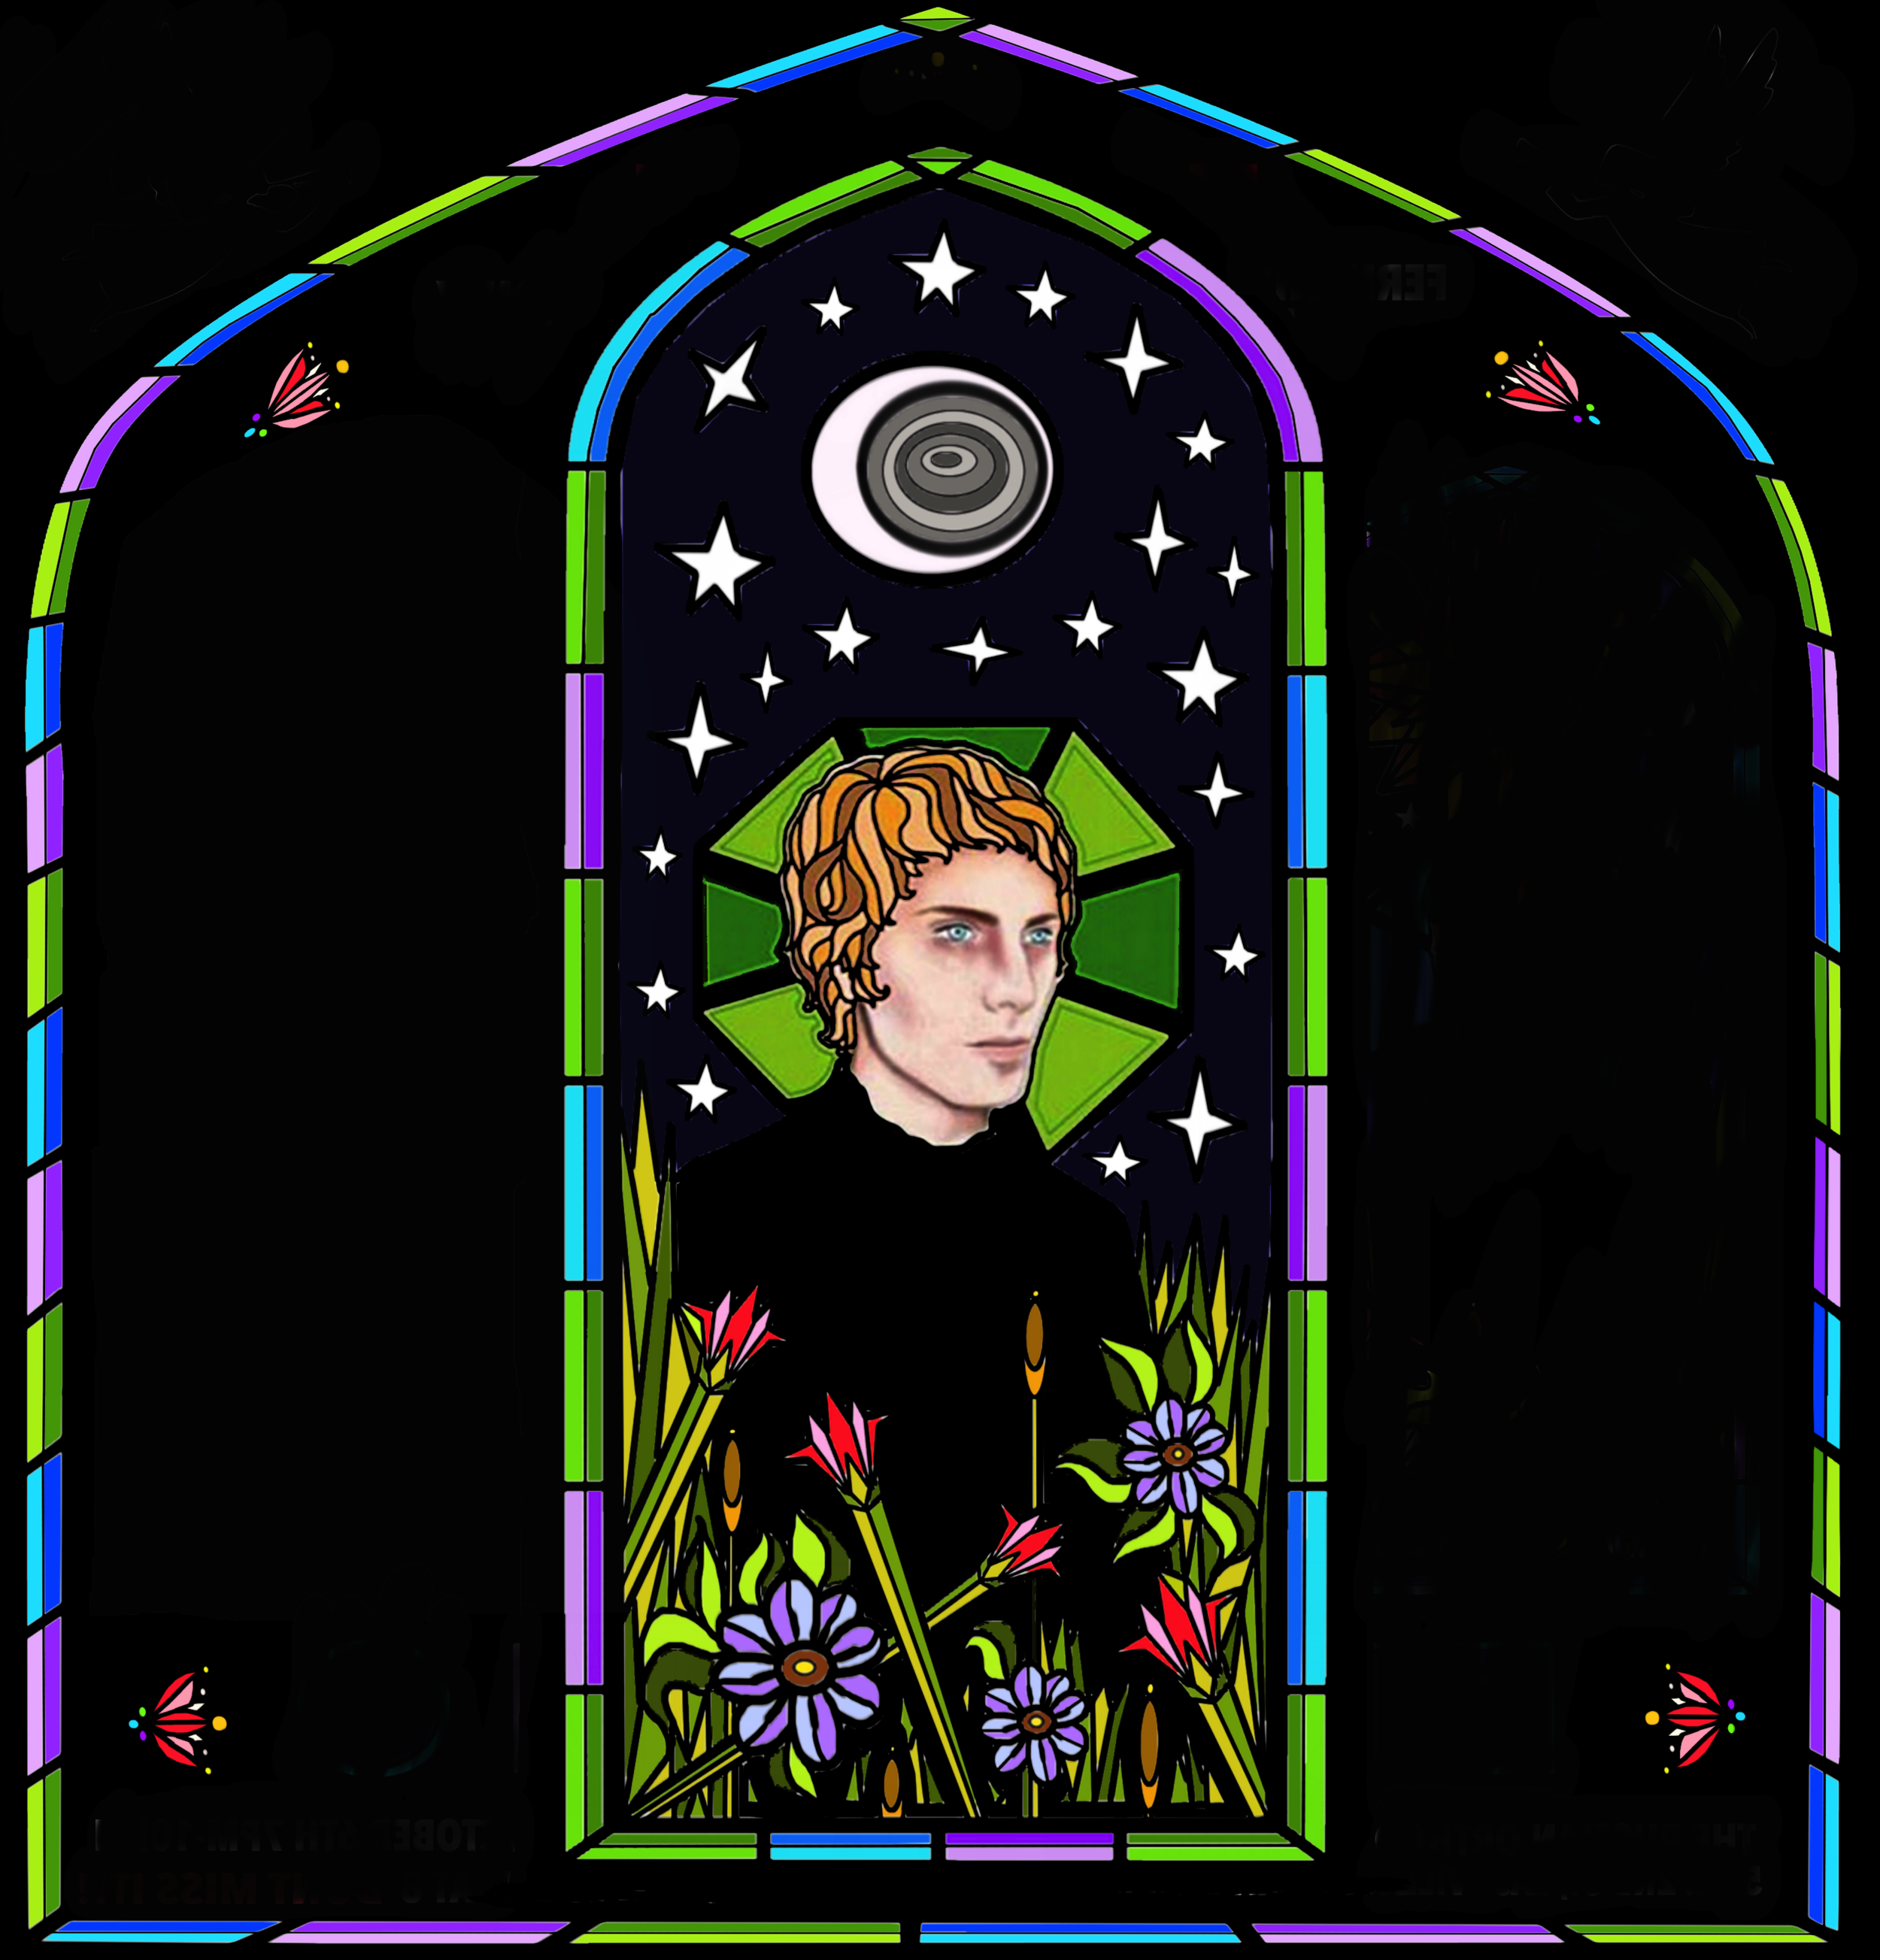 free-printable-stained-glass-window-coloring-pages-14 copy 9.png